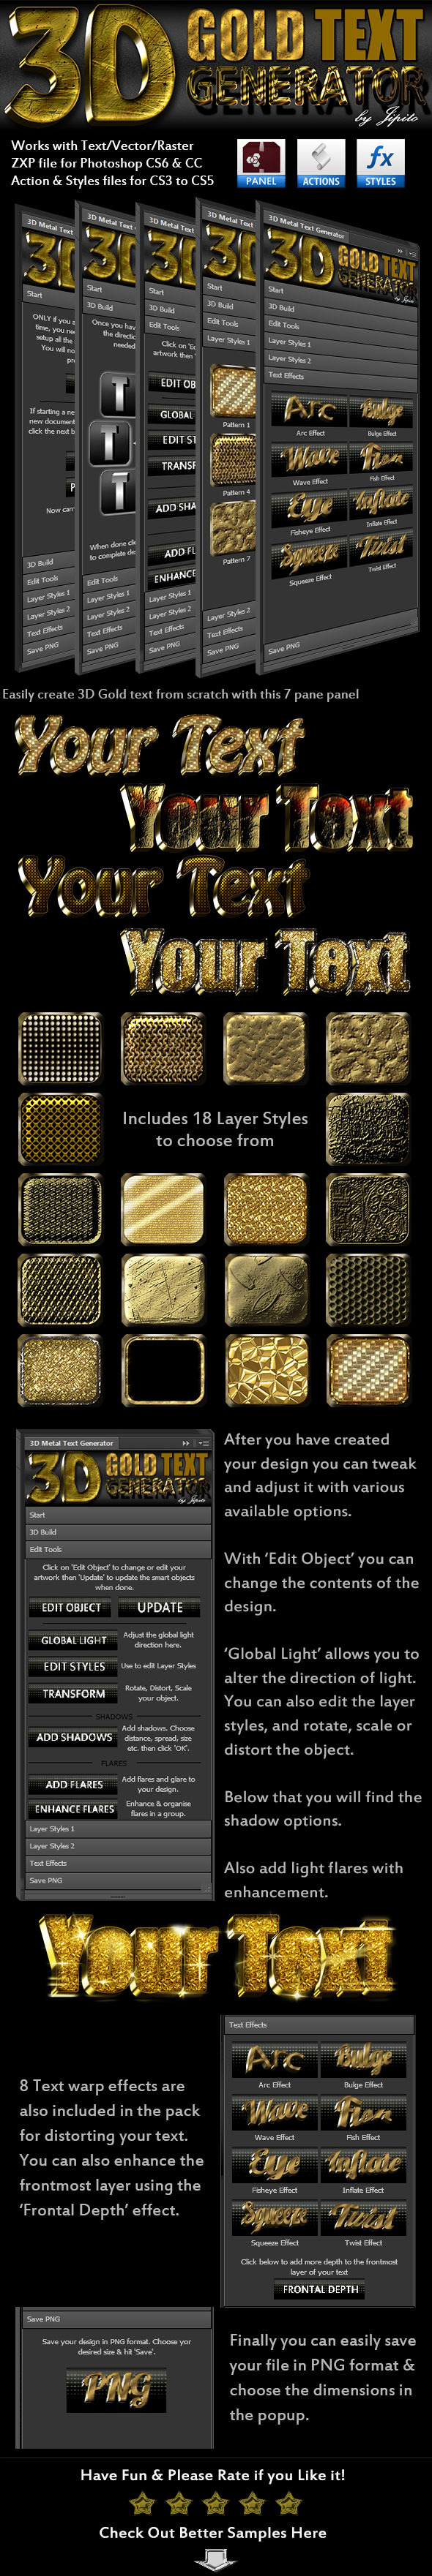 GraphicRiver 3D Gold Text Generator Panel 10073828